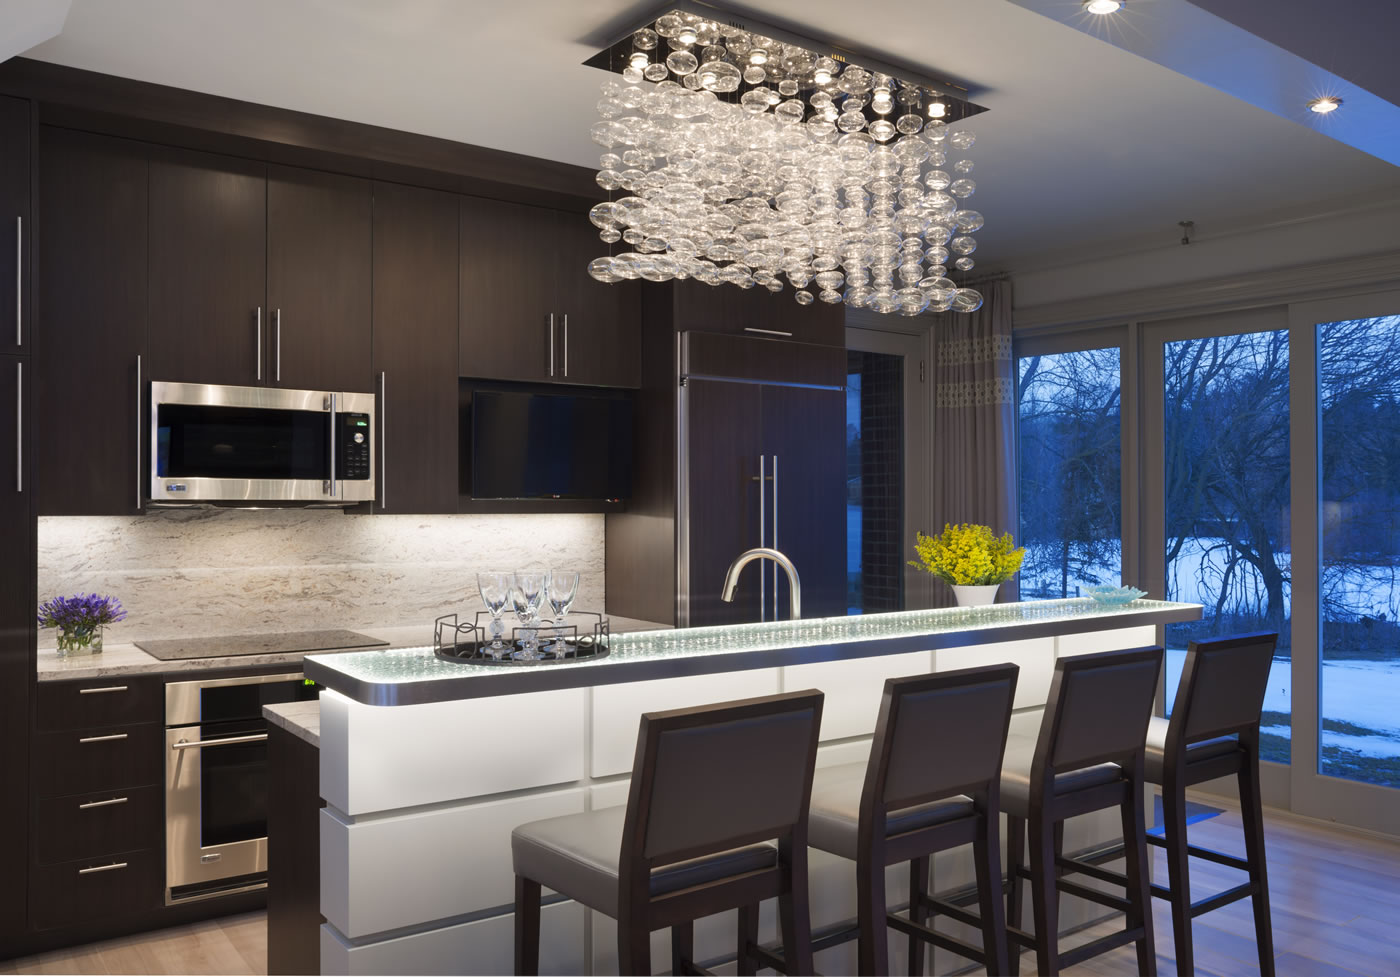 kitchen designers in michigan tutto interiors a michigan interior design firm receives 751